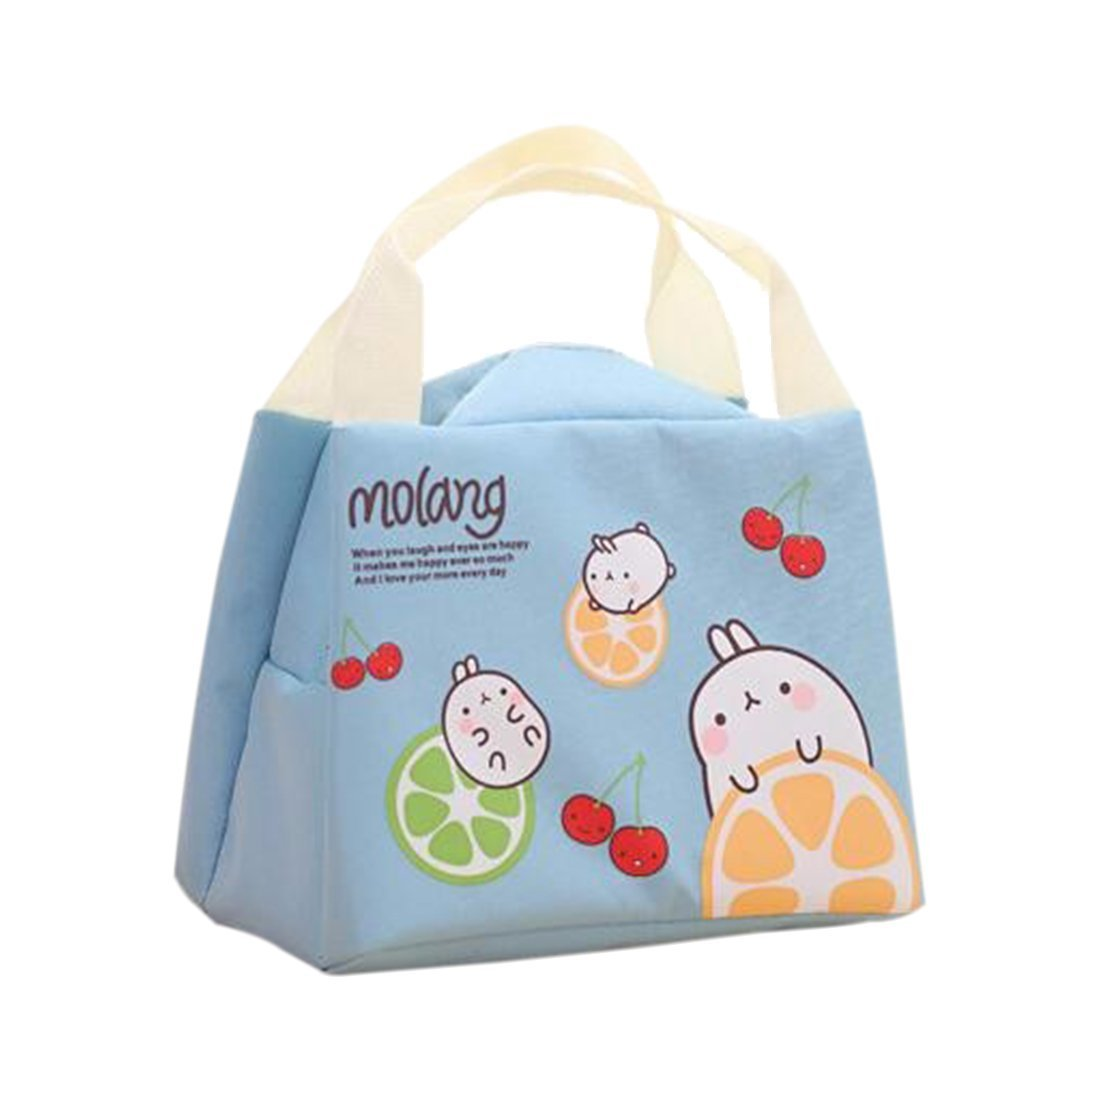 Cute Rabbit Tote - SODIAL(R) Cute Rabbit Canvas Lunch Thermal Bag Portable Insulated Food Picnic Bags Cooler Lunch Box Bag Tote£¨sky blue£© TRTA11A